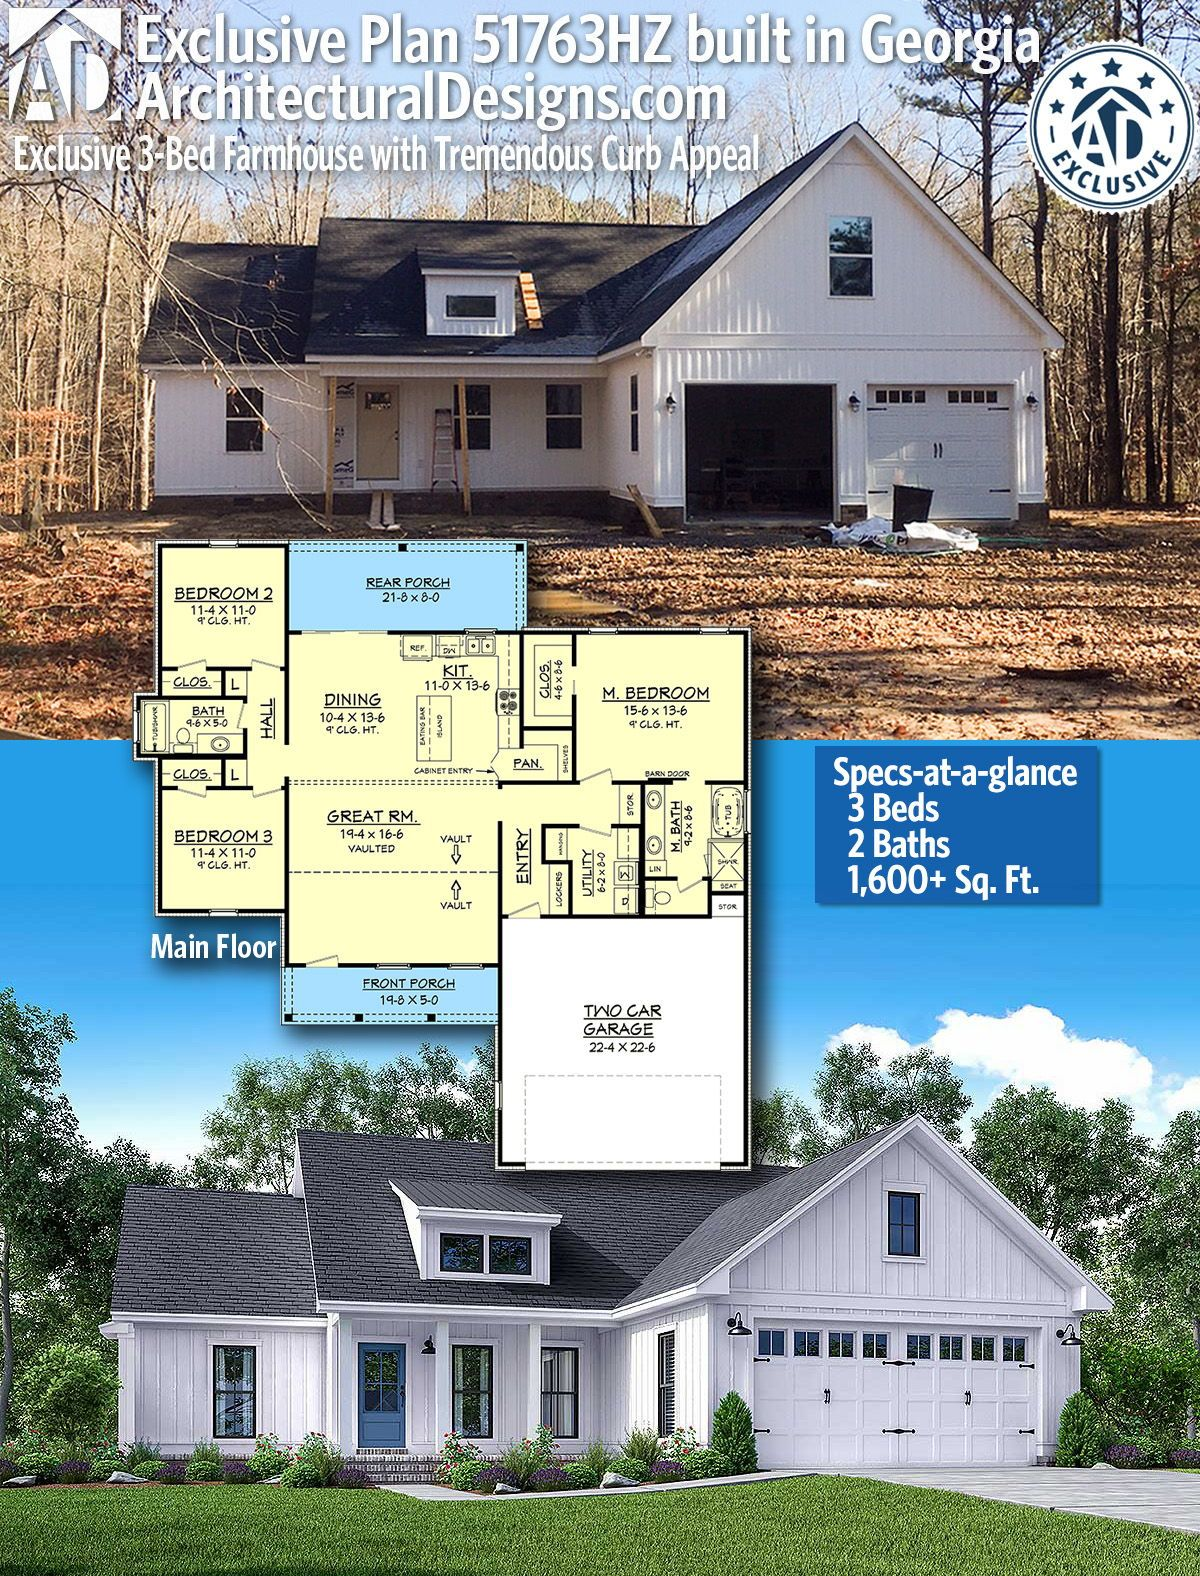 Architectural designs hz comes to life in georgia this home gives you bedrooms also rh pinterest